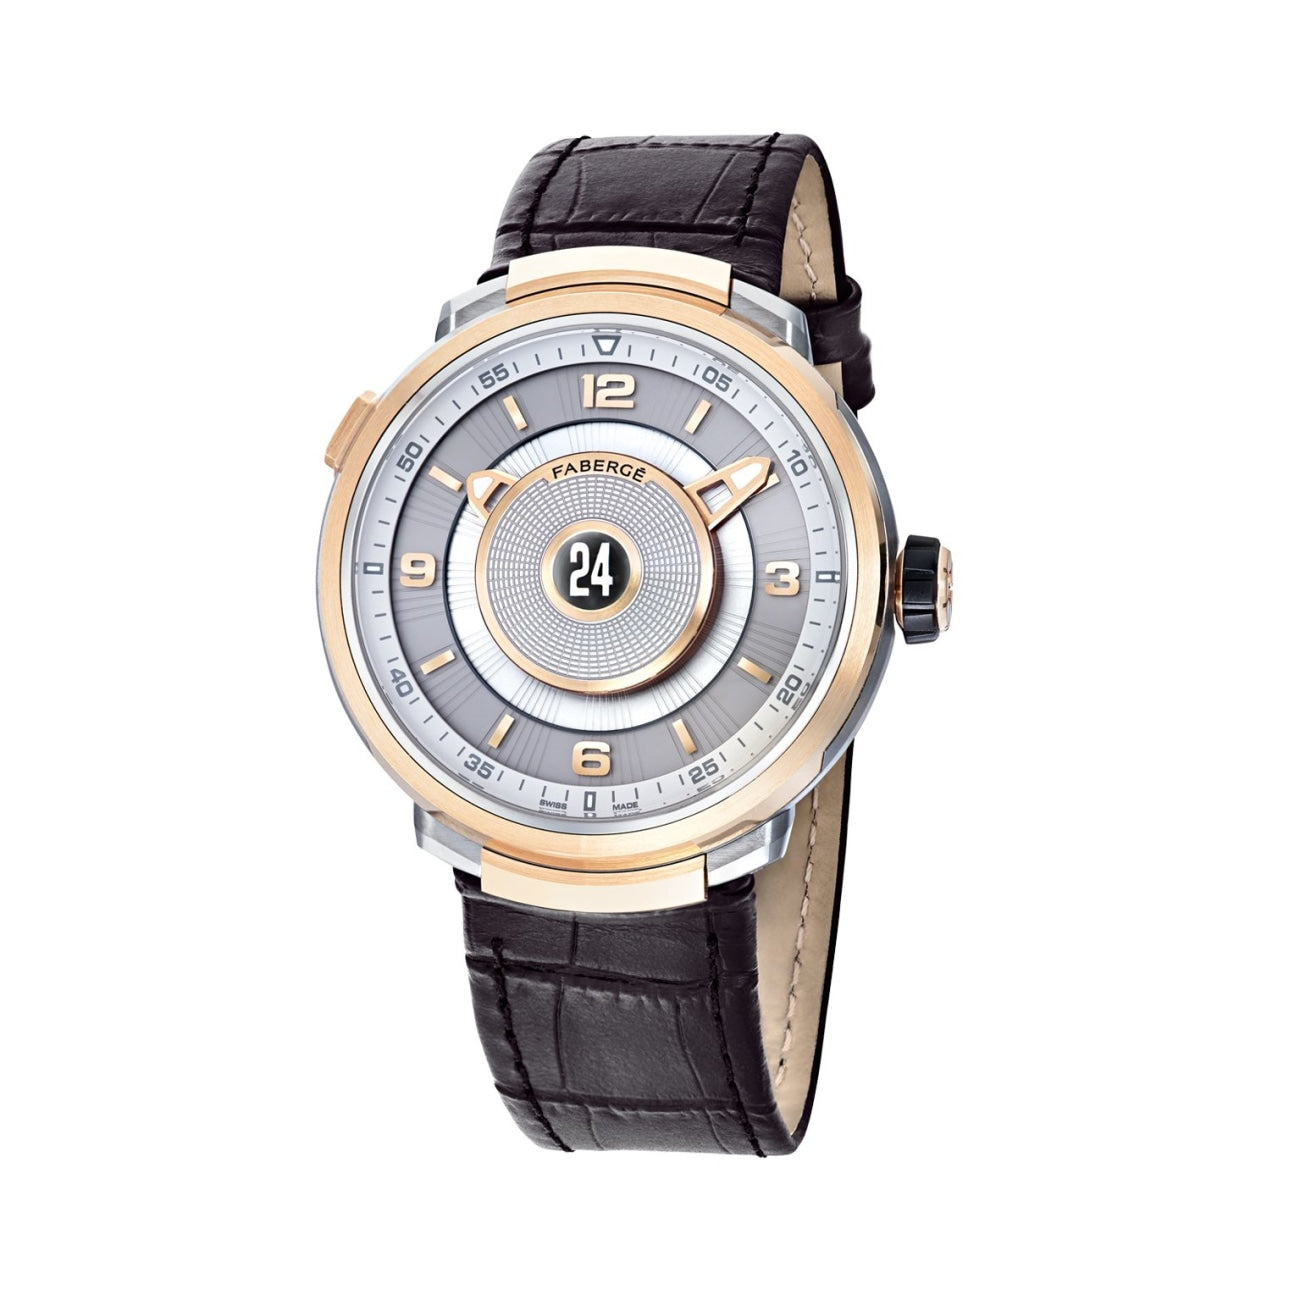 Fabergé Watches - VISIONNAIRE DTZ 18 KARAT ROSE GOLD | Manfredi Jewels